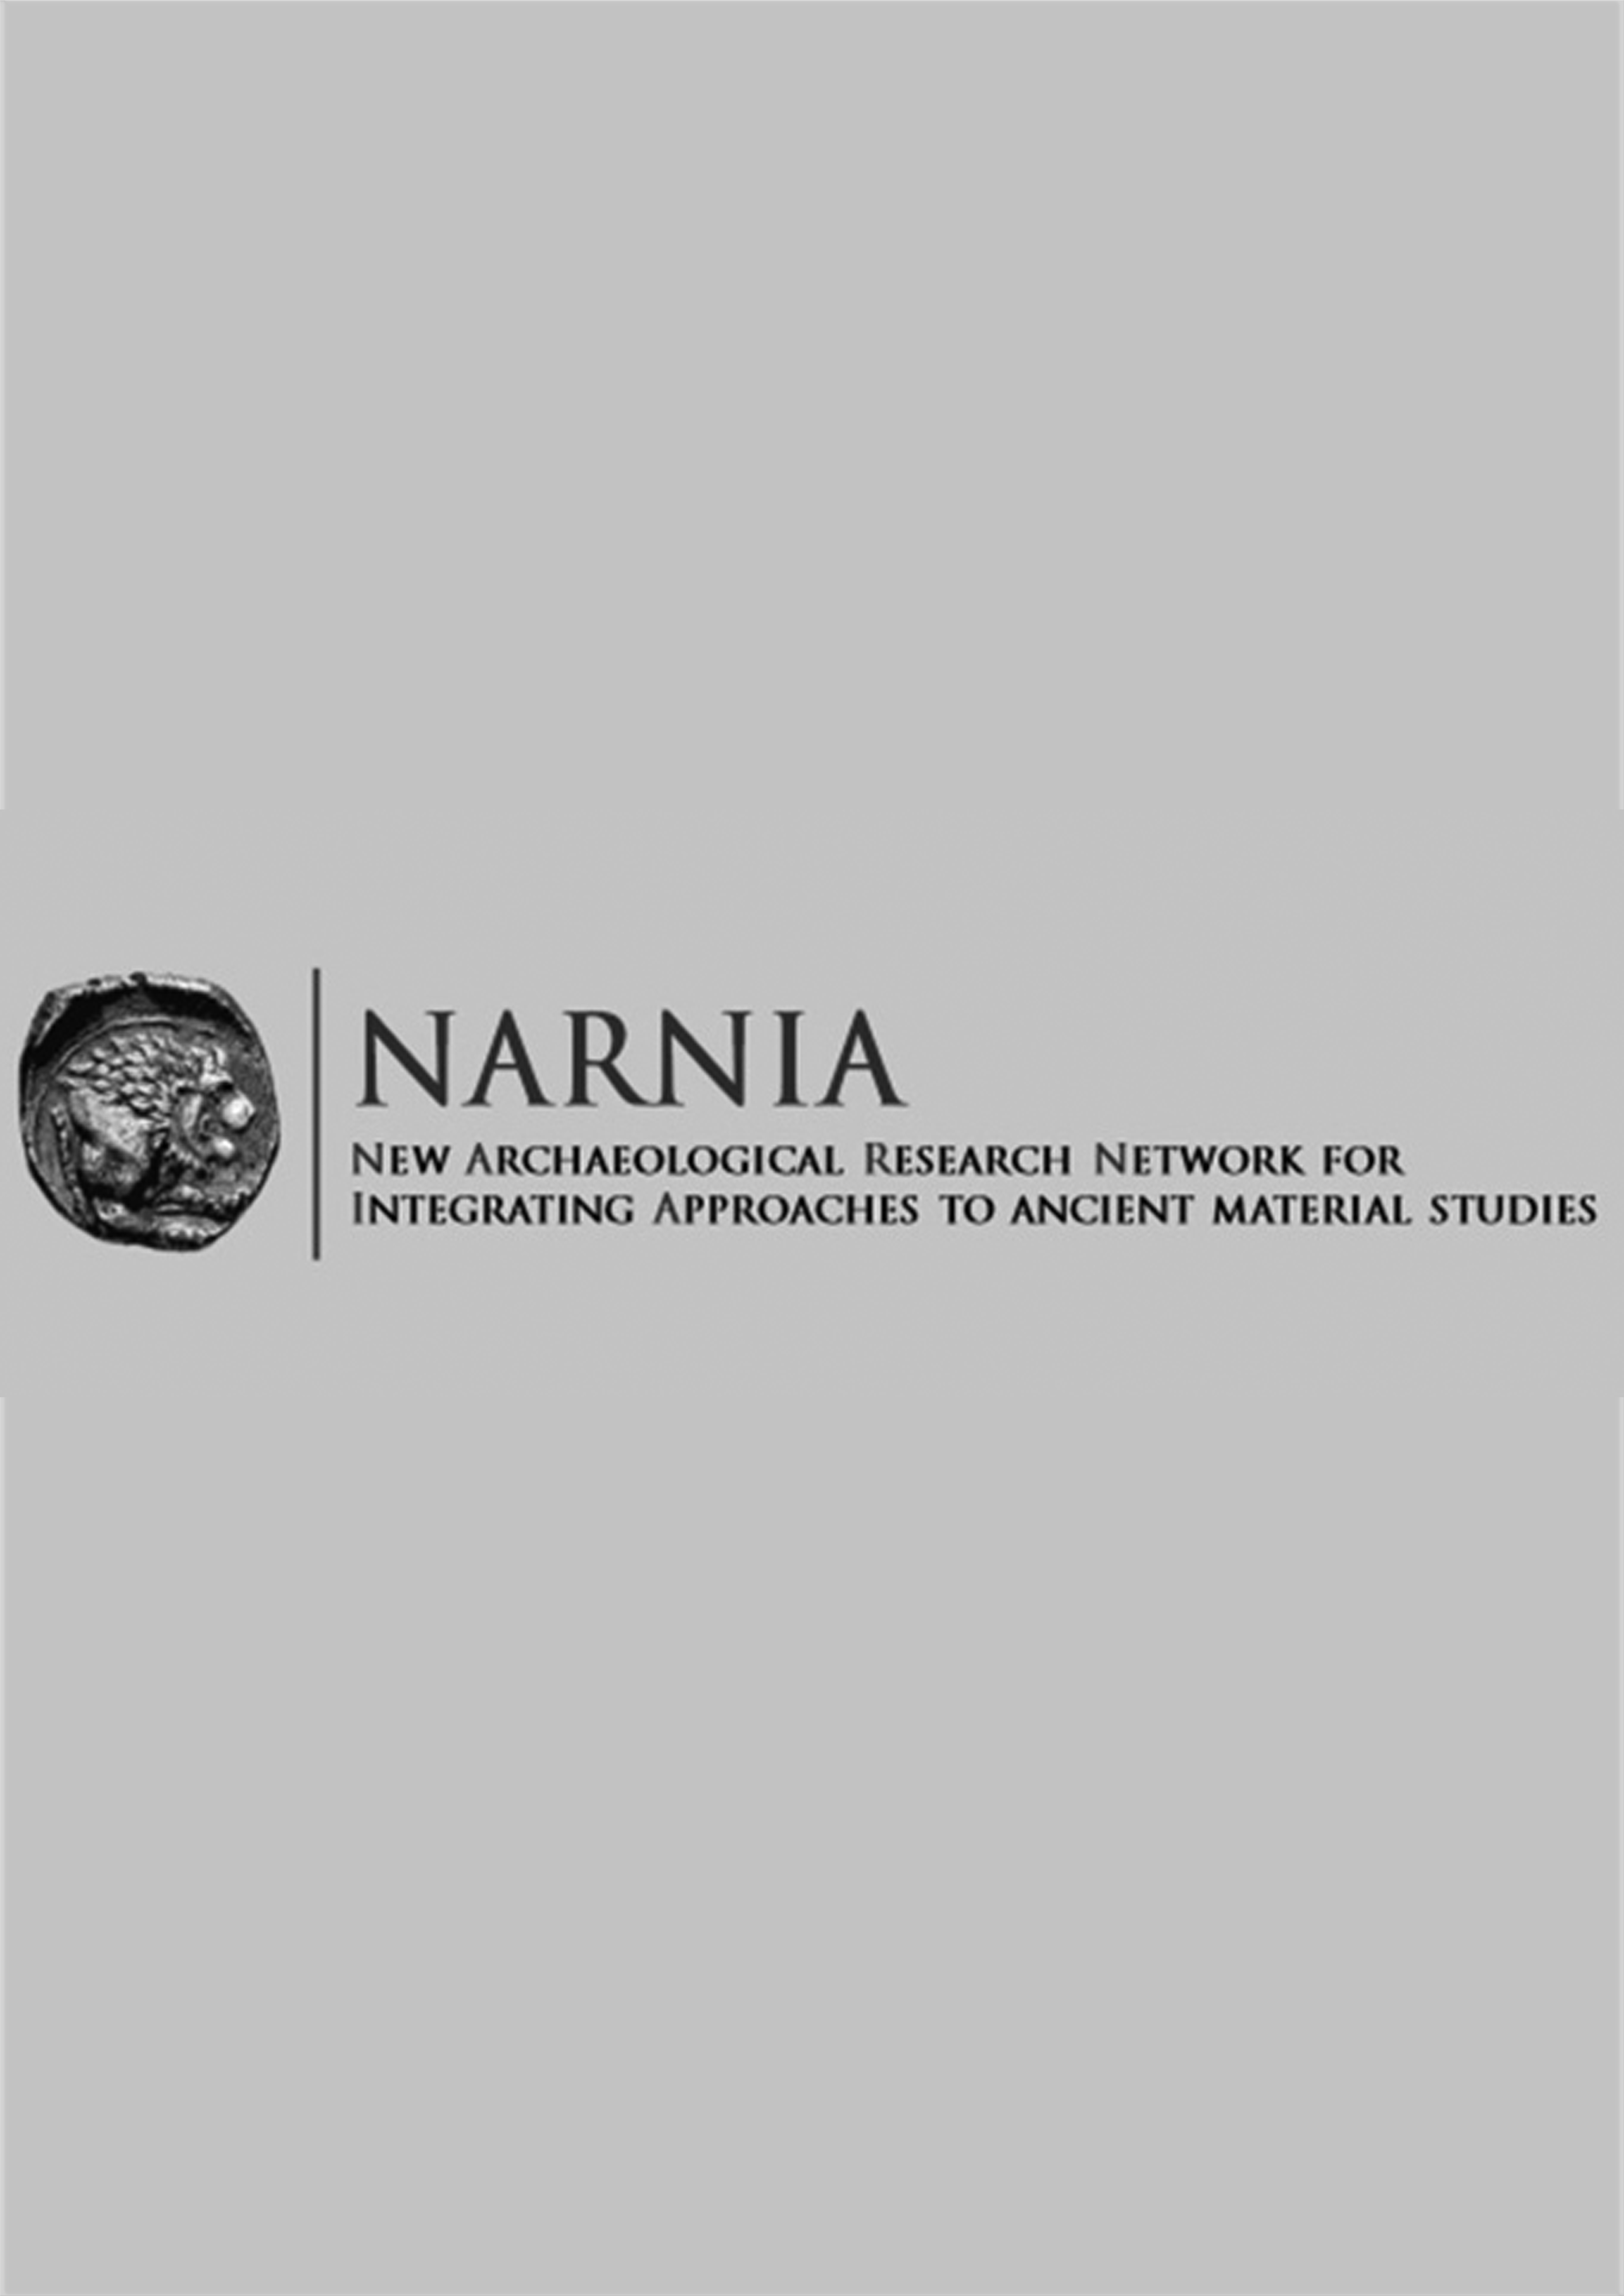 NARNIA-Training Poster